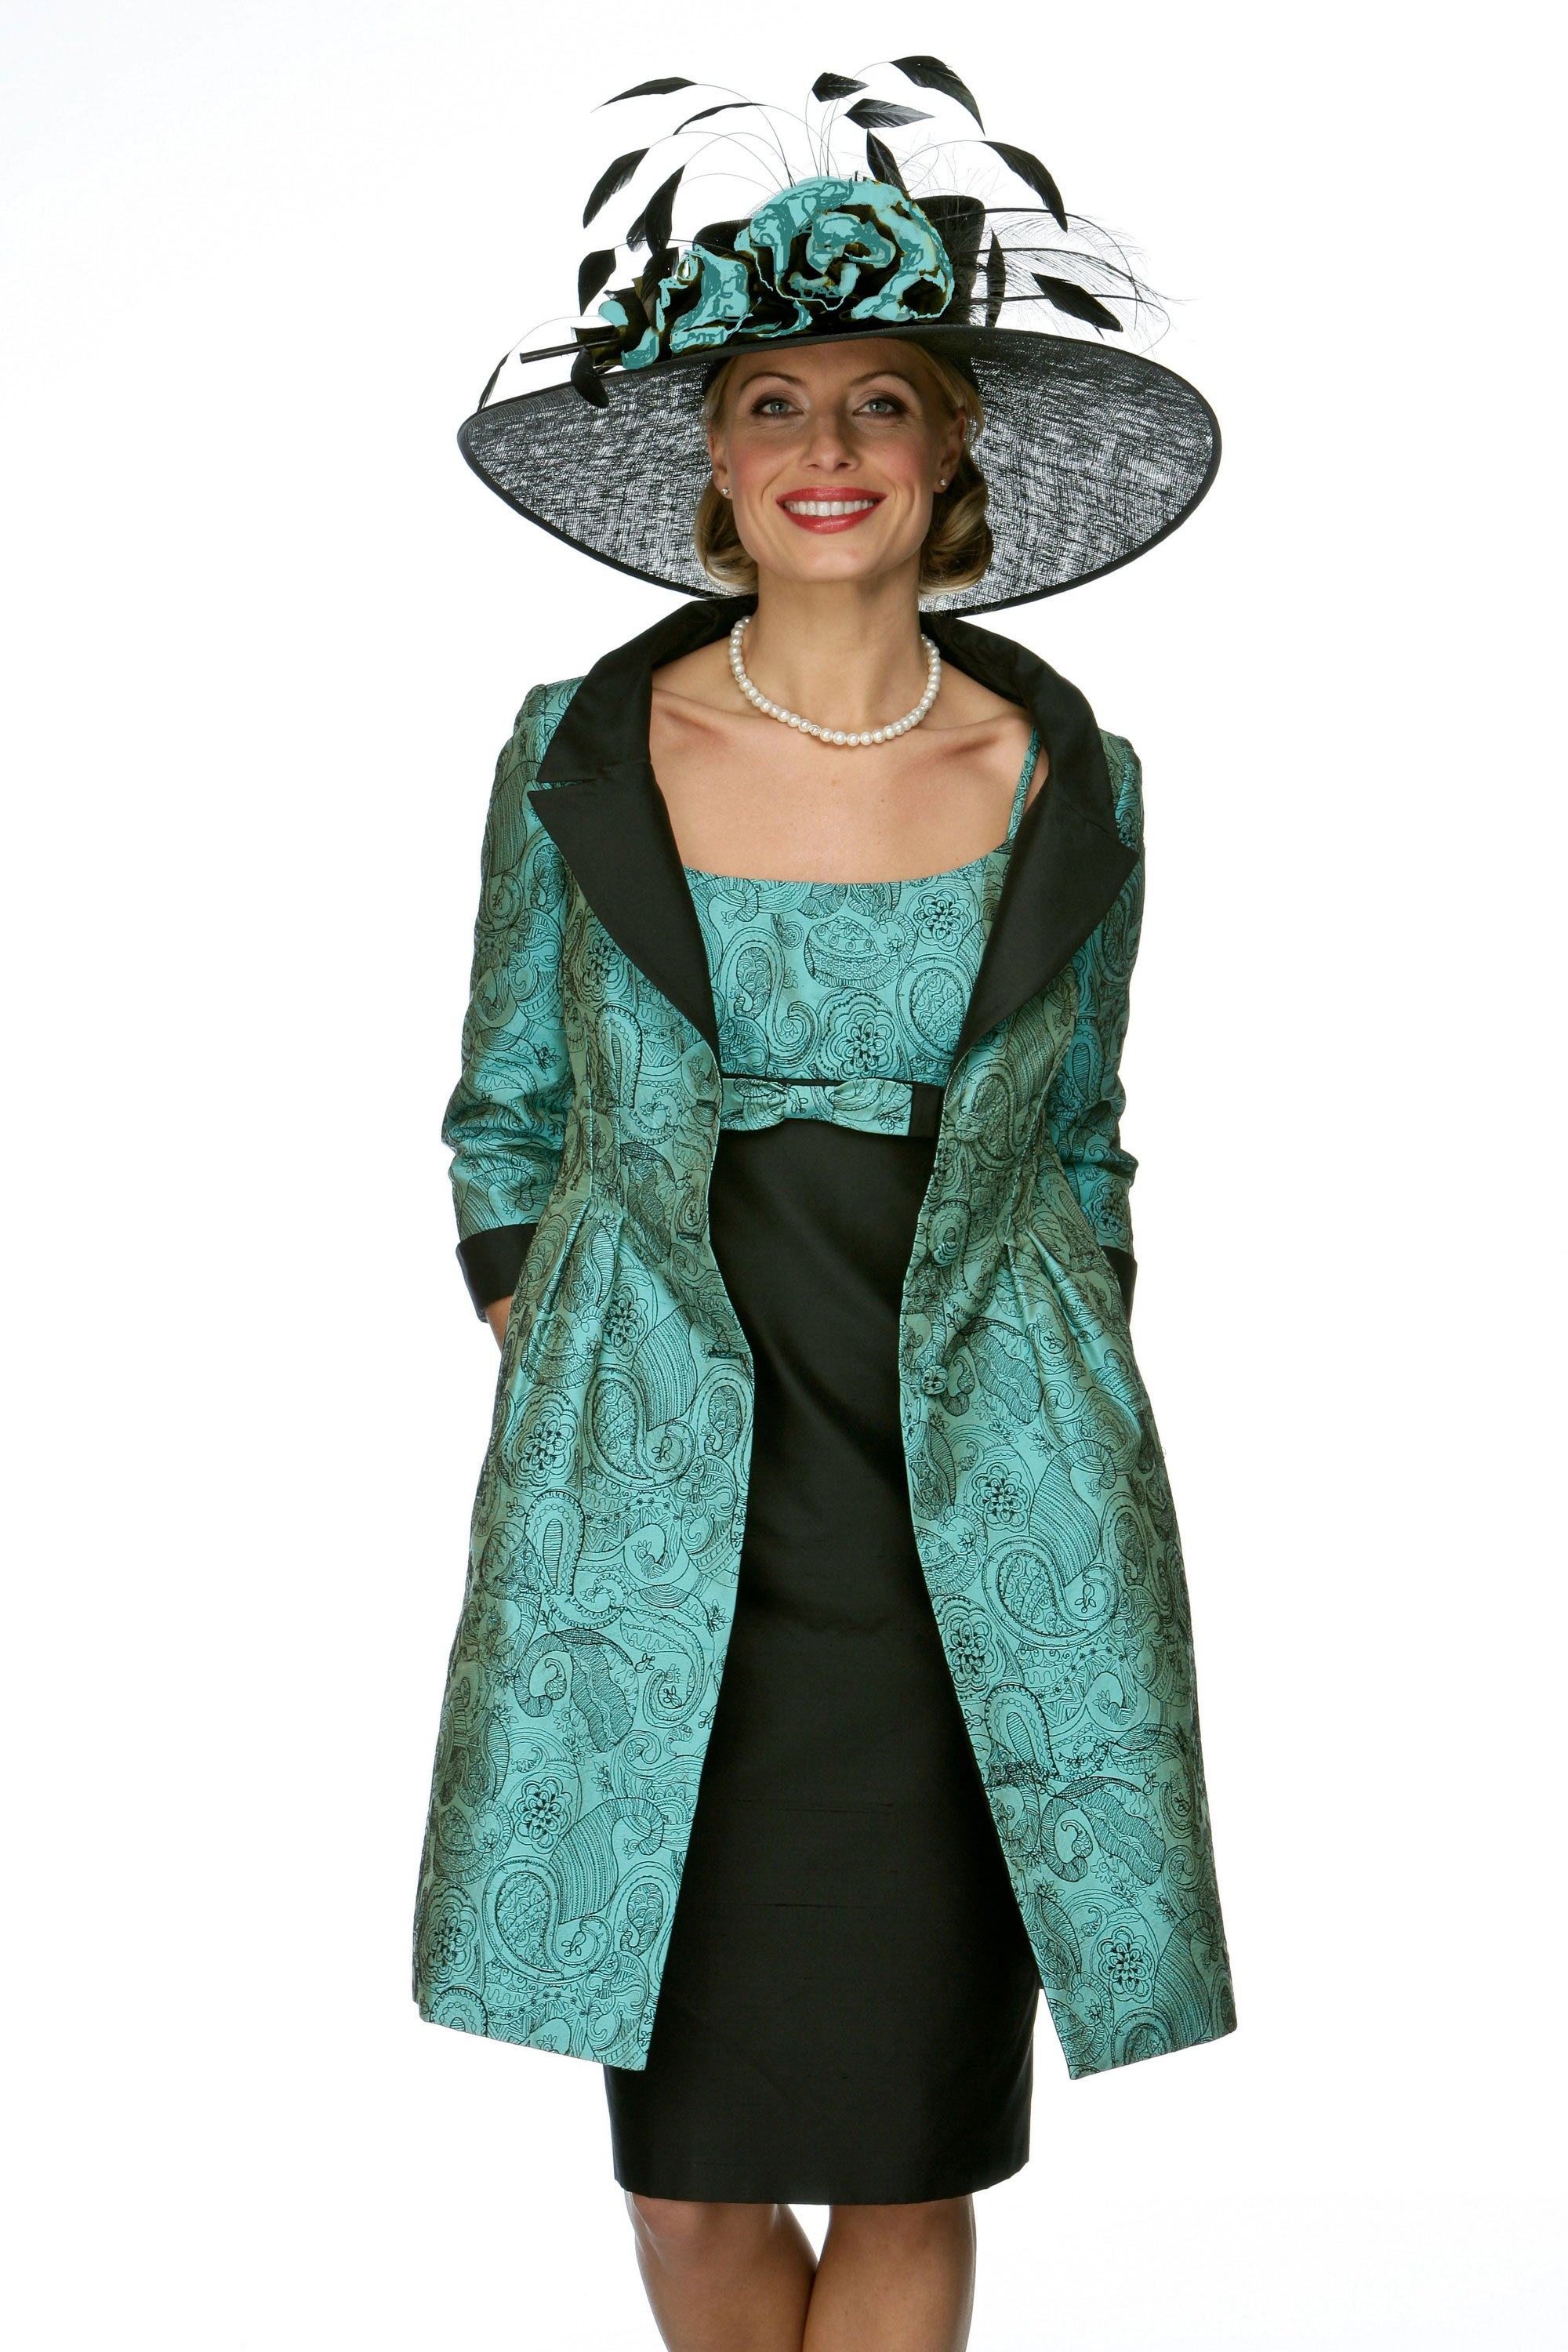 Embroidered silk dress and coat